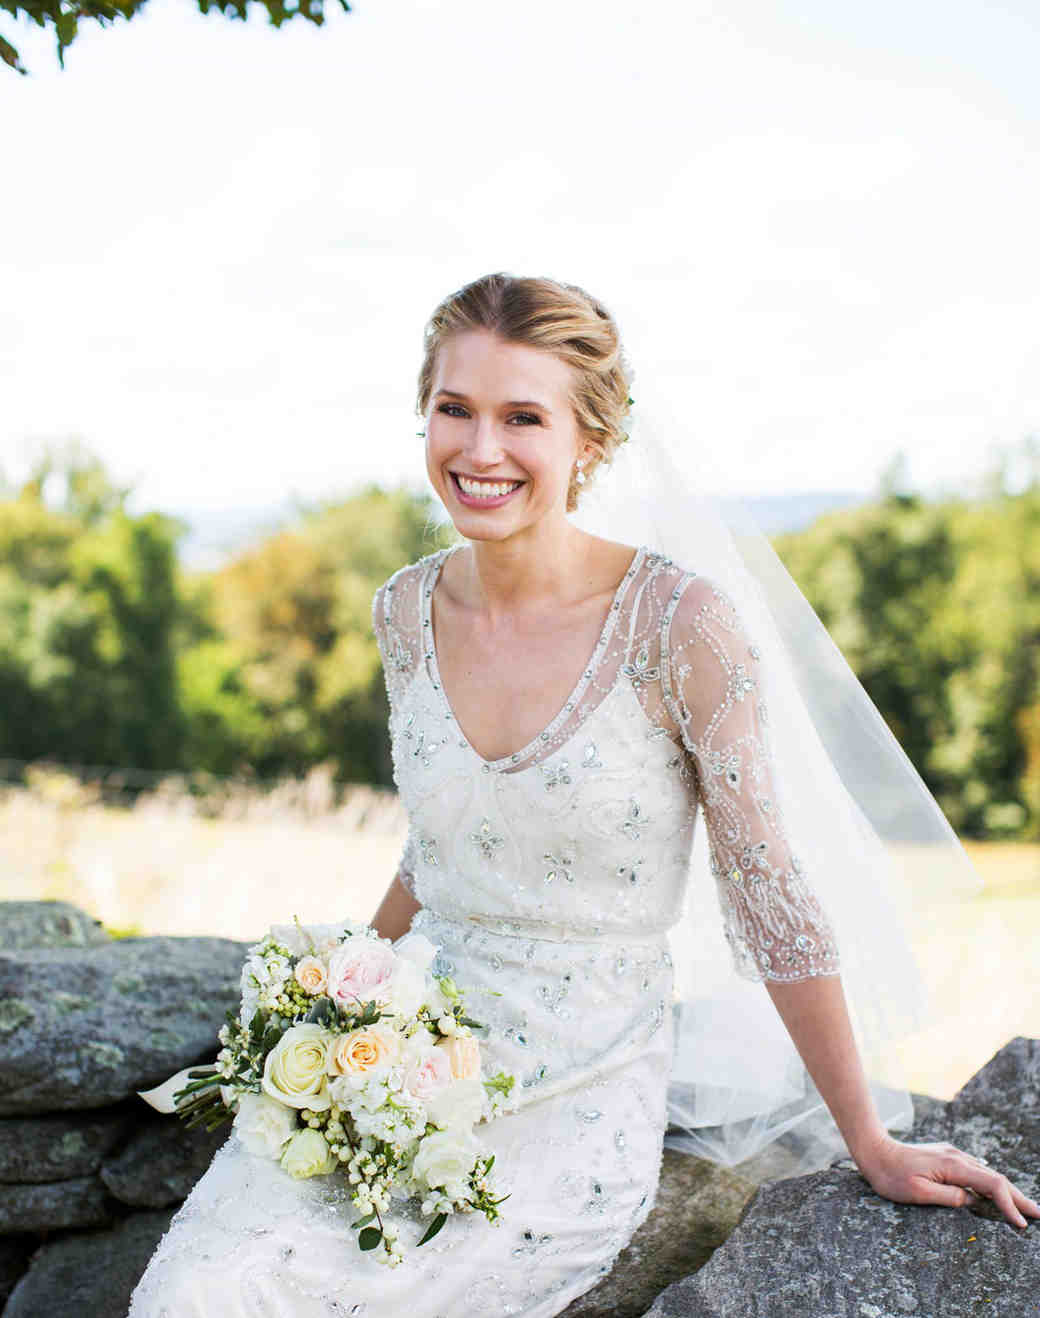 10 Tips for Choosing a Wedding-Day Look You Won't Regret in 25 Years